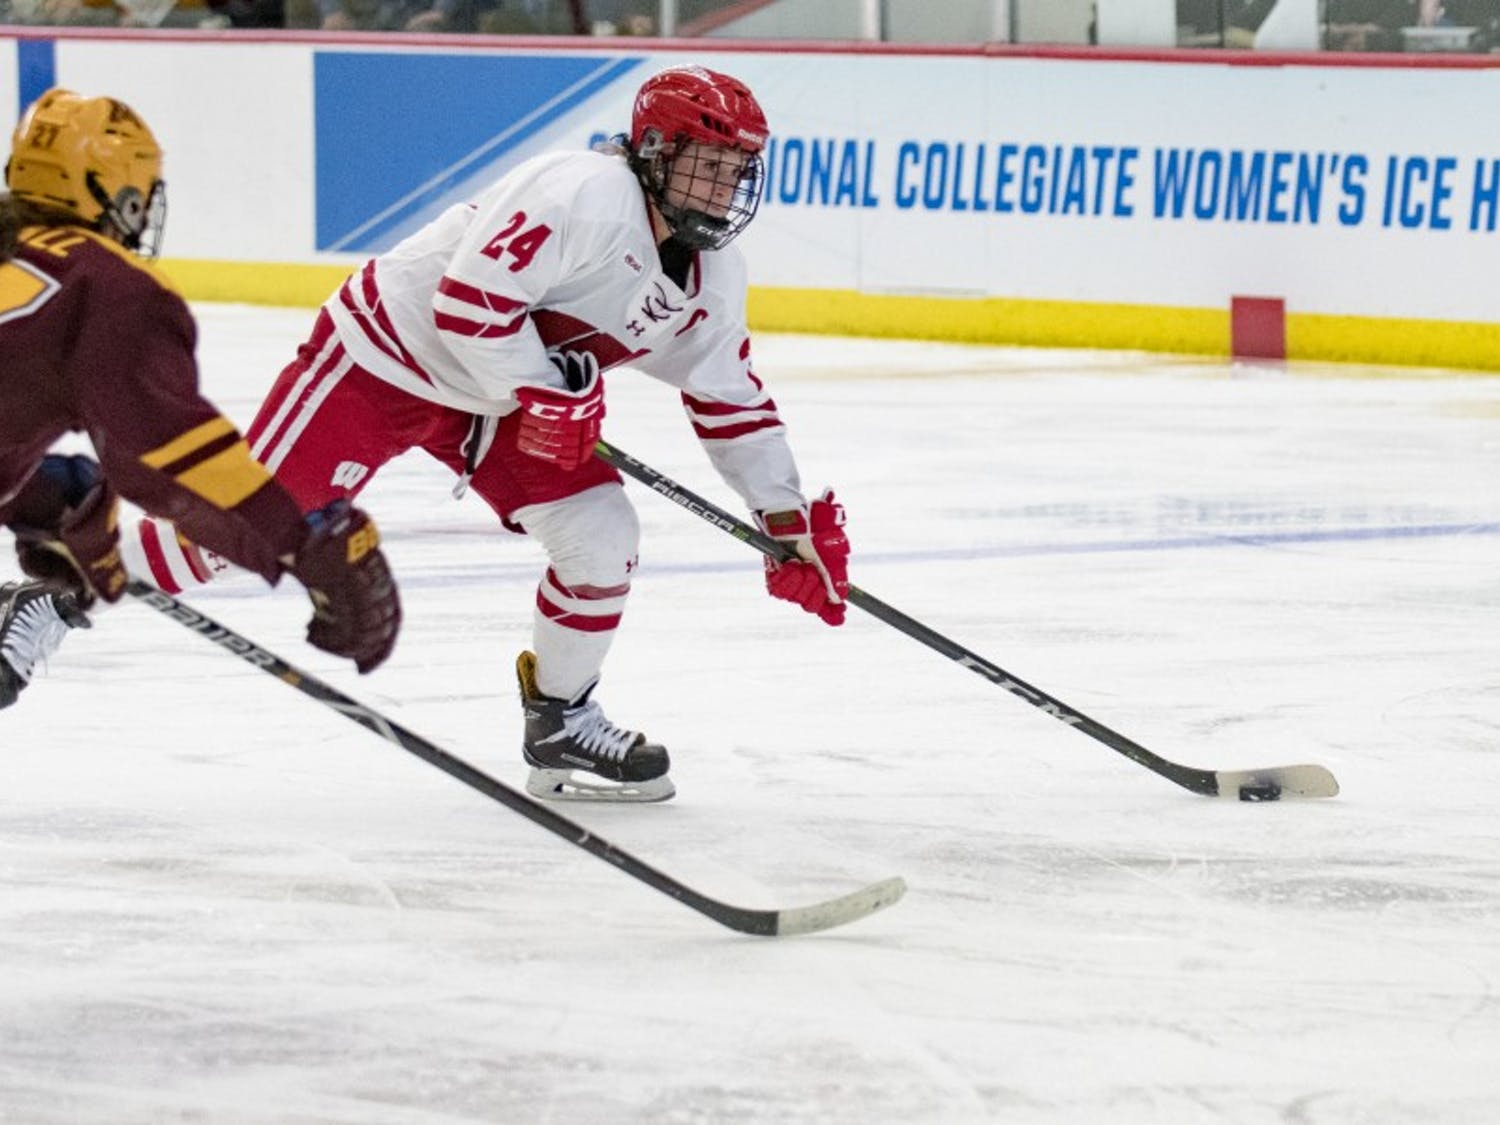 Senior co-captain Claudia Kepler had to sit out Wisconsin's Frozen Four run last season. She's hoping to bring back a title to Madison this year as UW readies for the Frozen Frour.